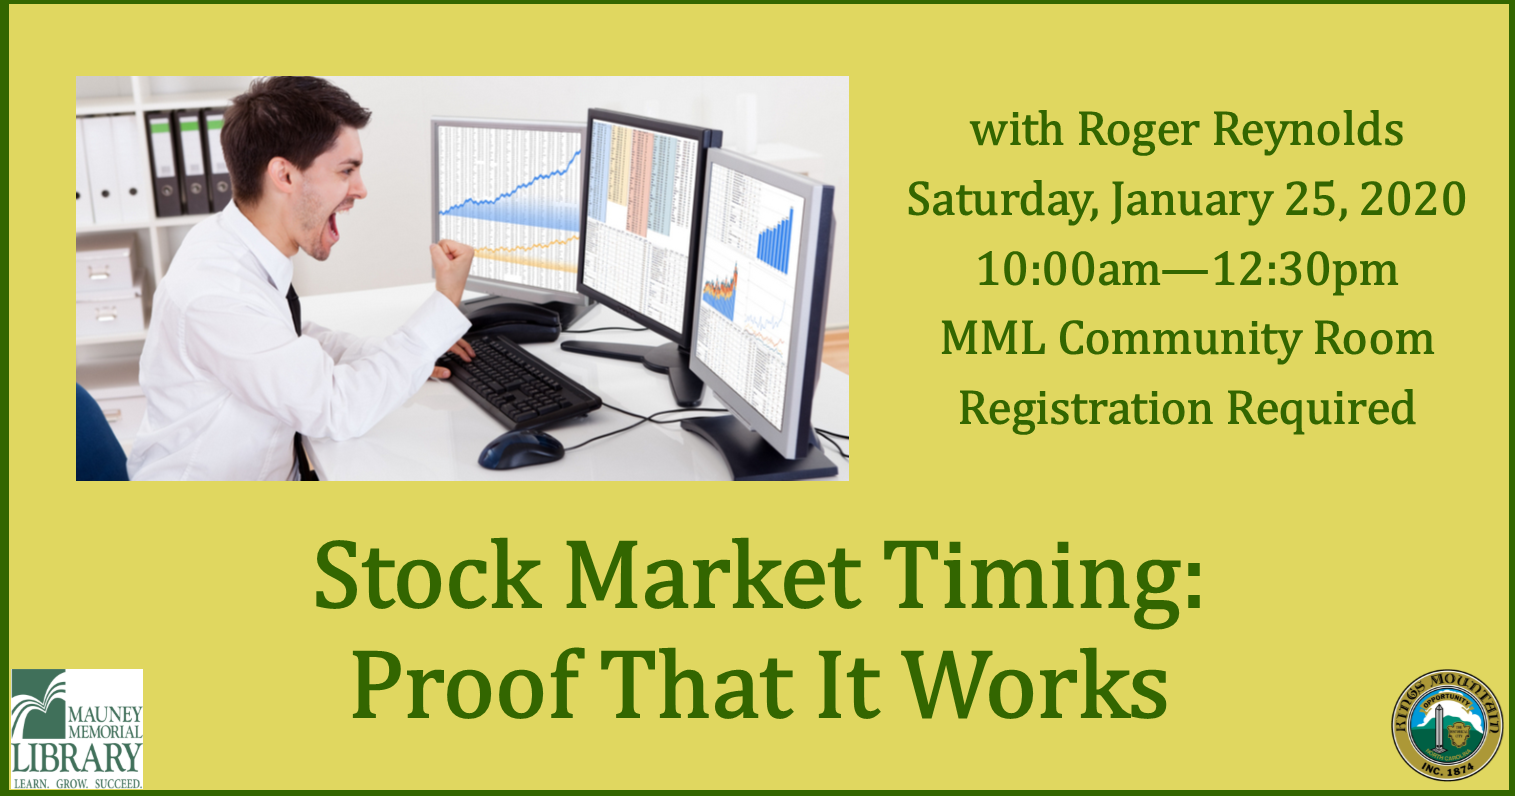 Stock Market Timing: Proof that it Works!